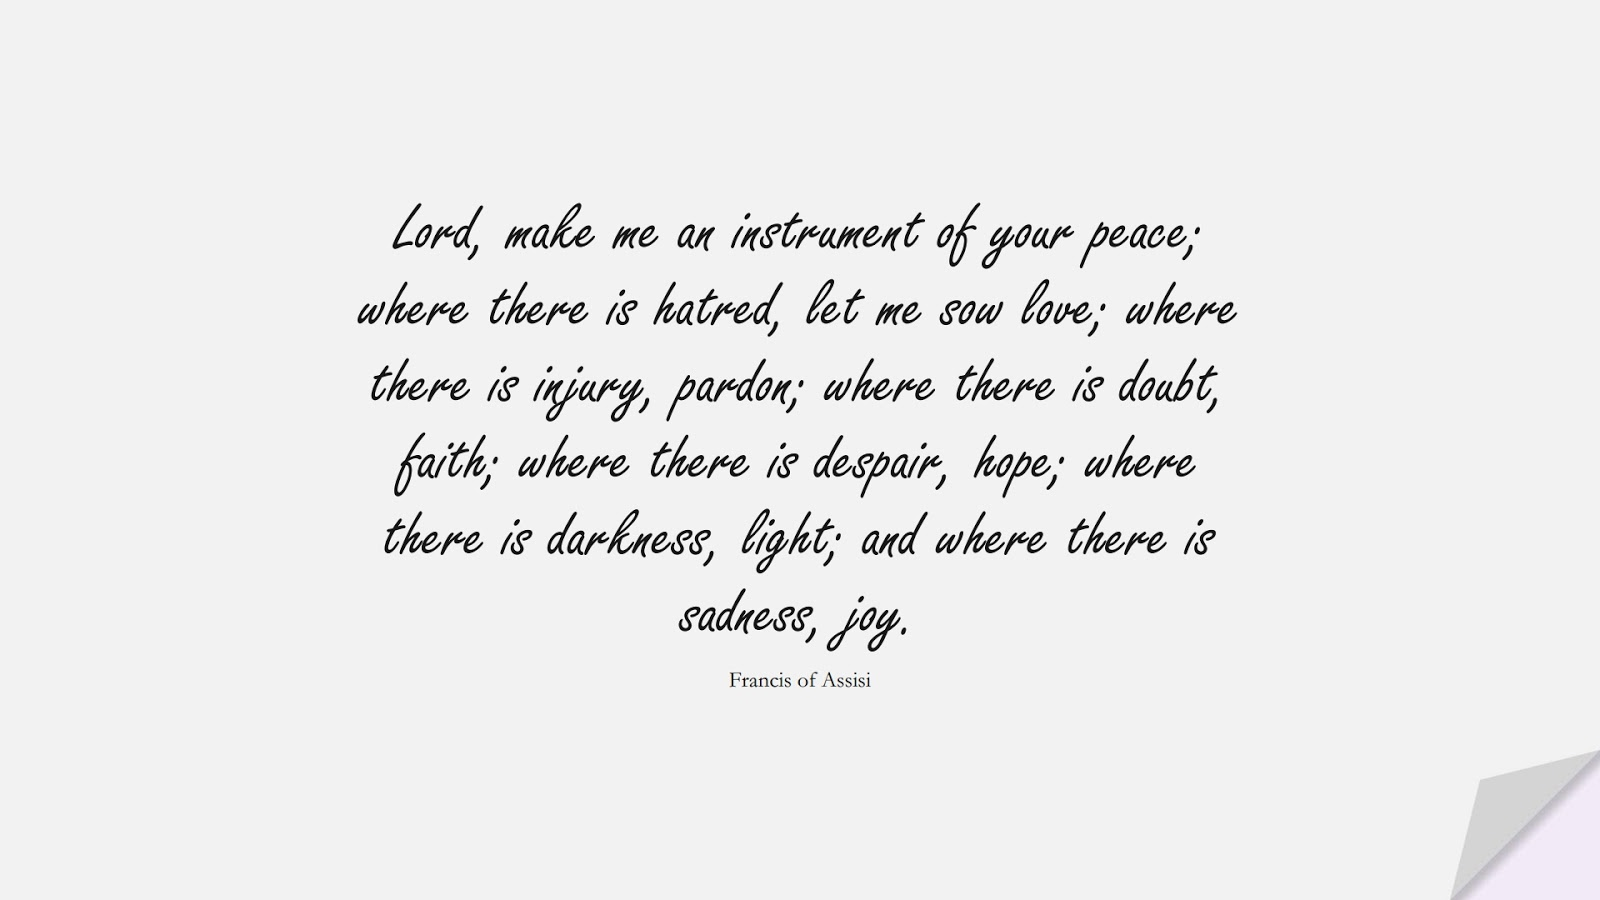 Lord, make me an instrument of your peace; where there is hatred, let me sow love; where there is injury, pardon; where there is doubt, faith; where there is despair, hope; where there is darkness, light; and where there is sadness, joy. (Francis of Assisi);  #HopeQuotes